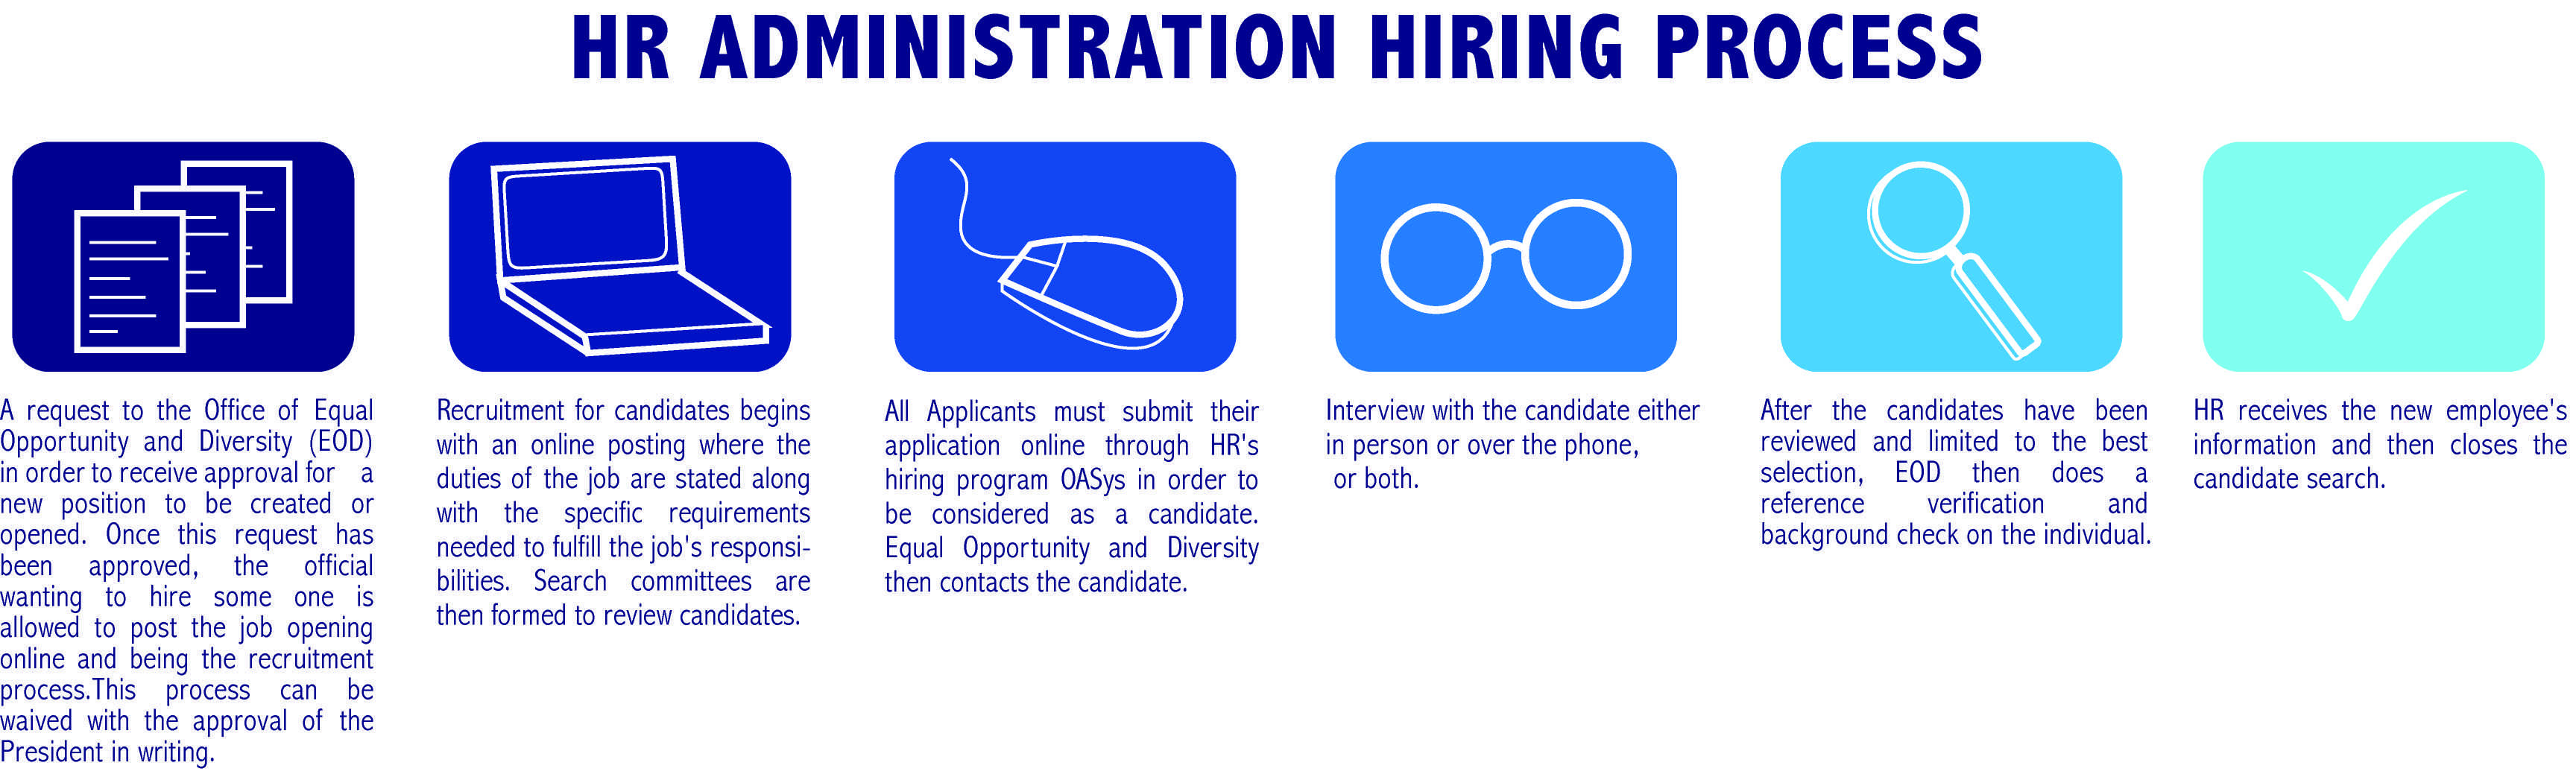 Traditionally UNF hires individuals under the HR administration hiring process. But with the occasional search waive, this process is disregarded, Graphic by Caitlyn Broyles.